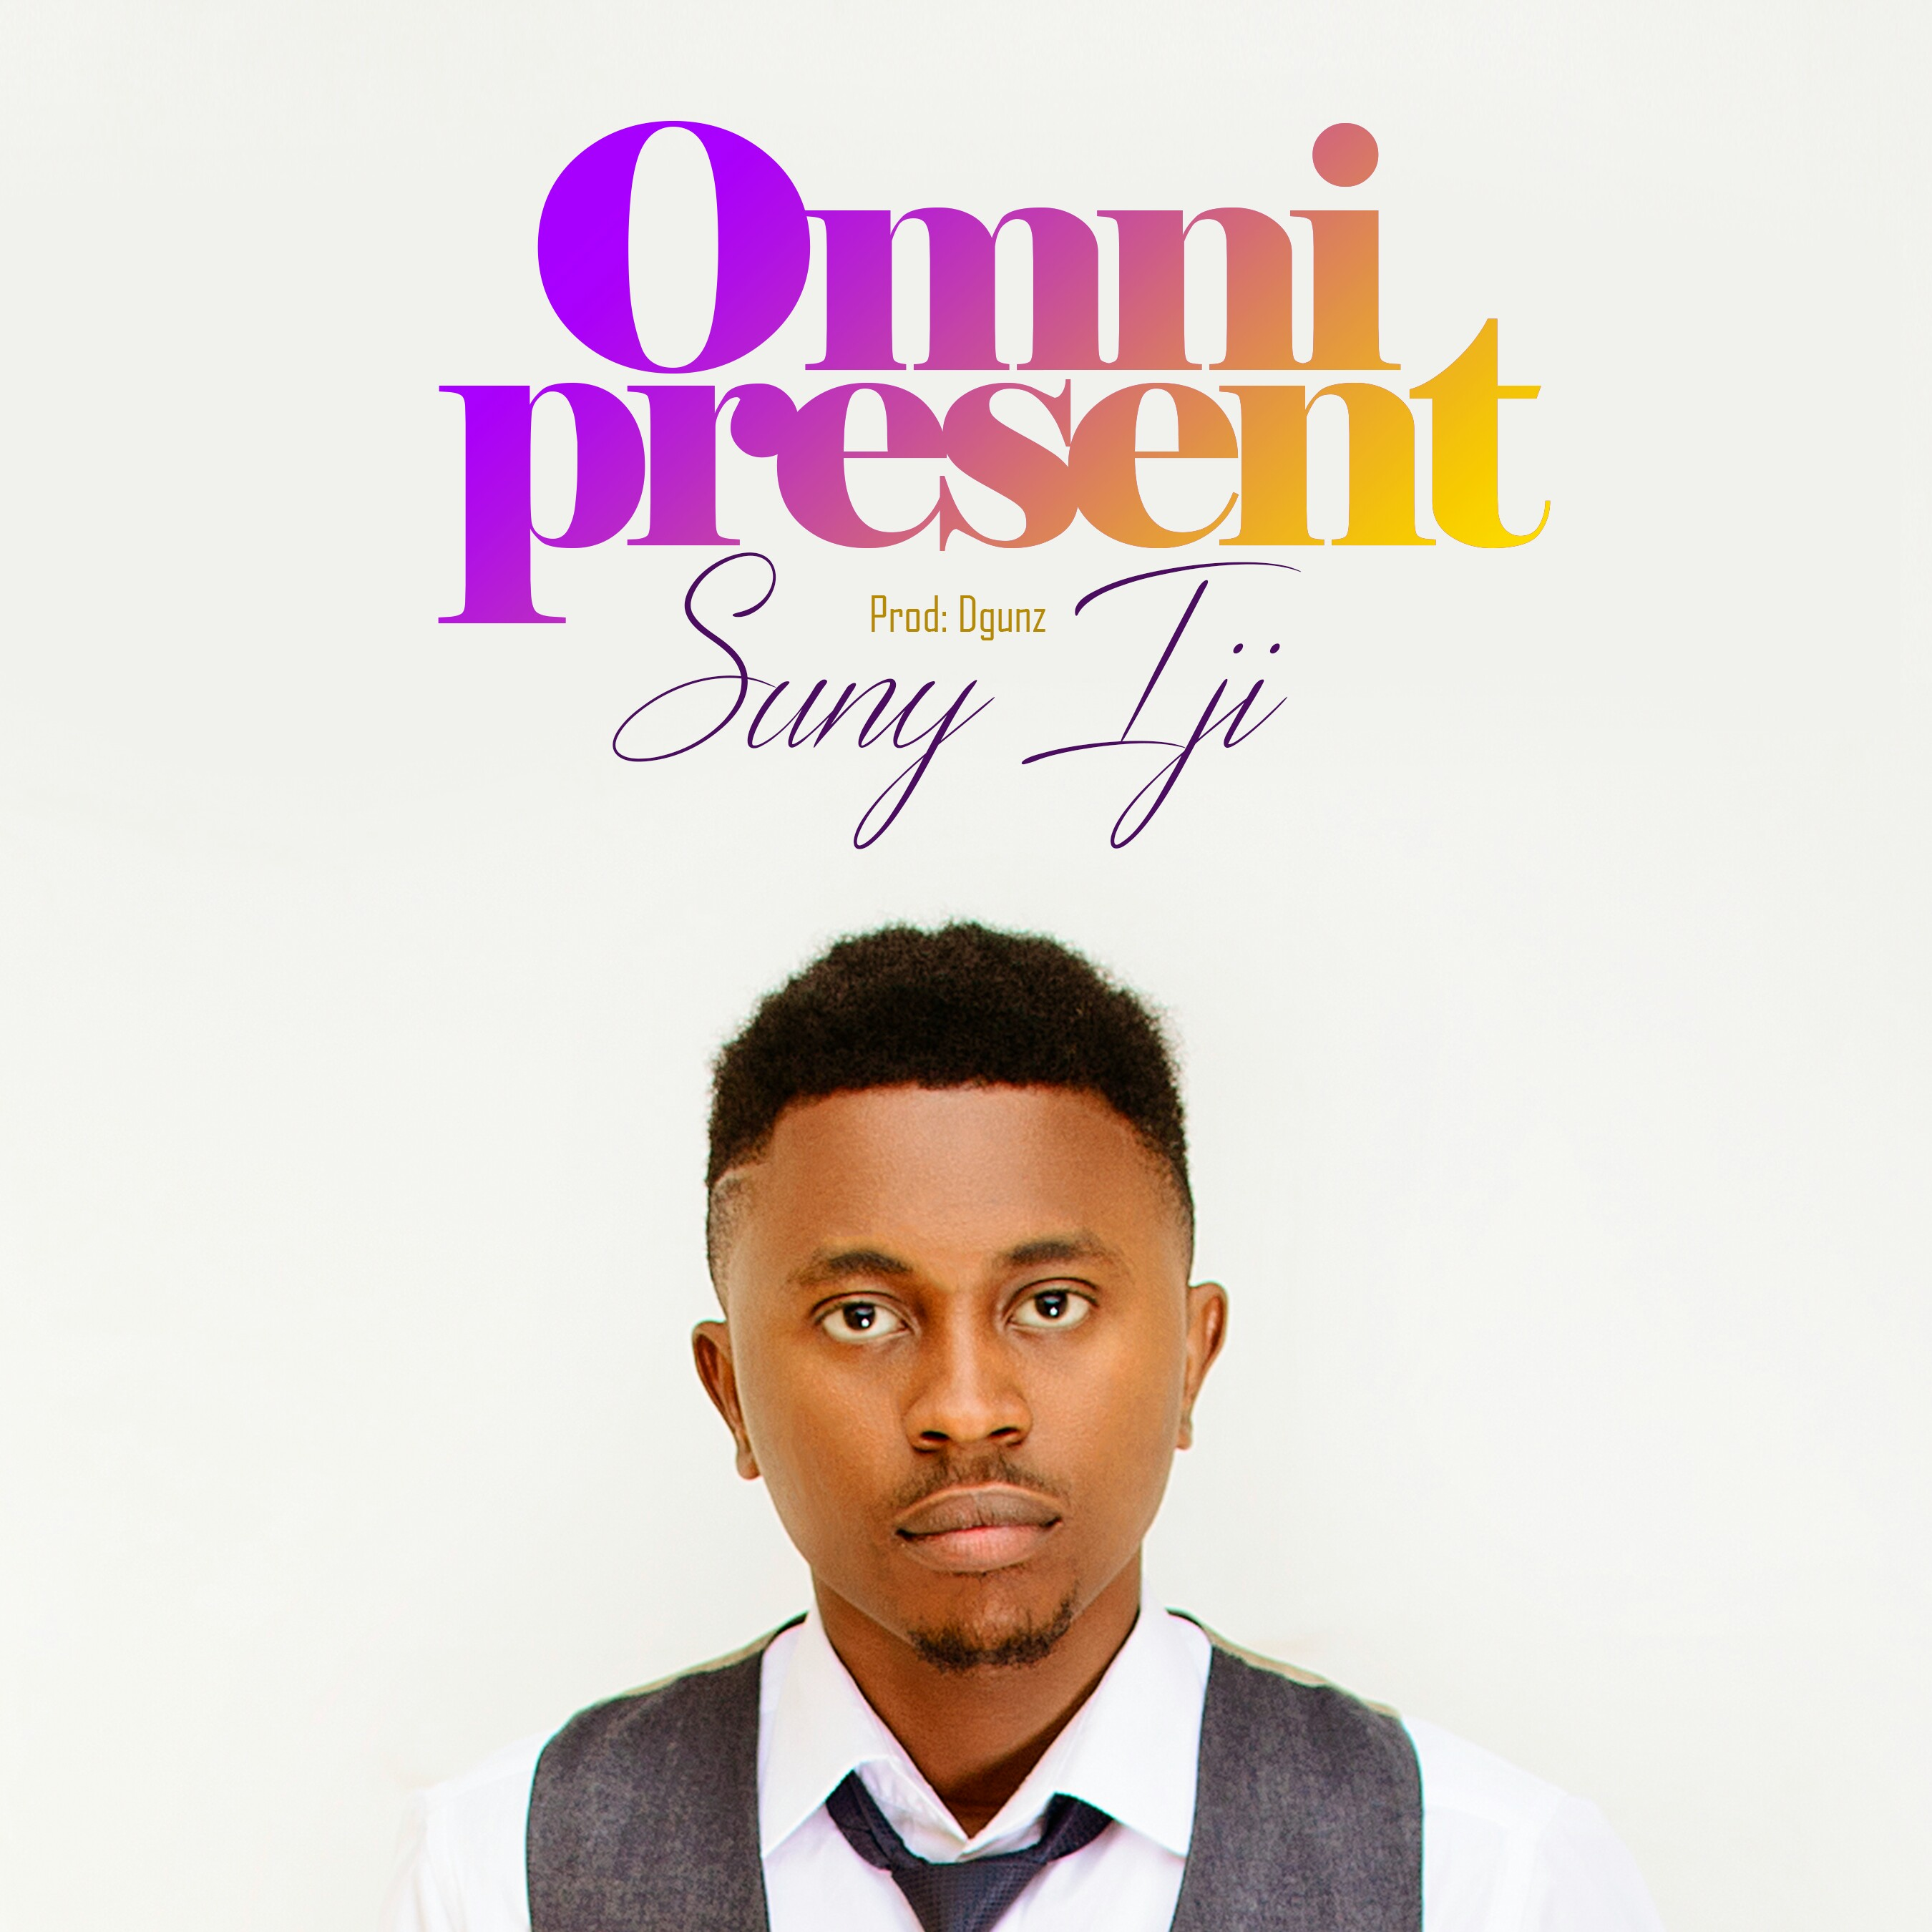 OMNIPRESENT BY SUNY IJI